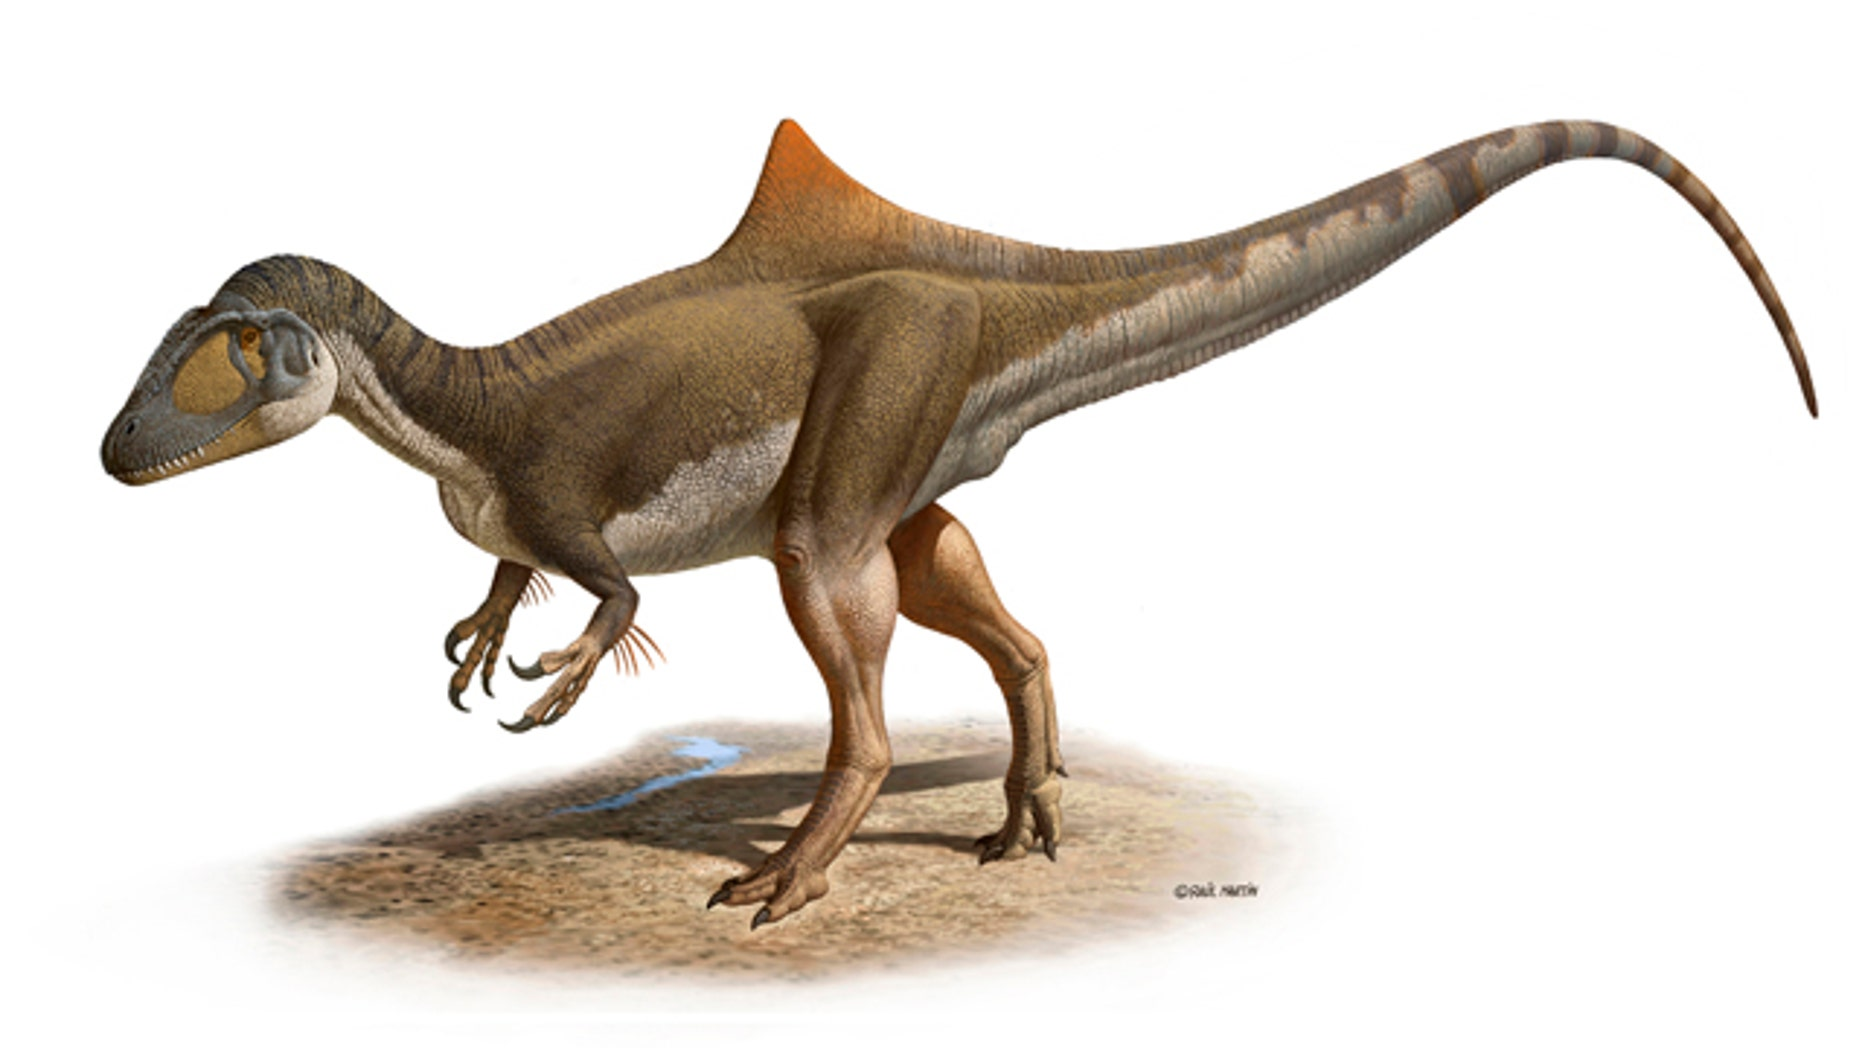 The weird world of dinosaurs has just gotten a tad more bizarre. Scientists found a nearly complete fossil of a new dinosaur that sports a noticeable hump, maybe as advertising.